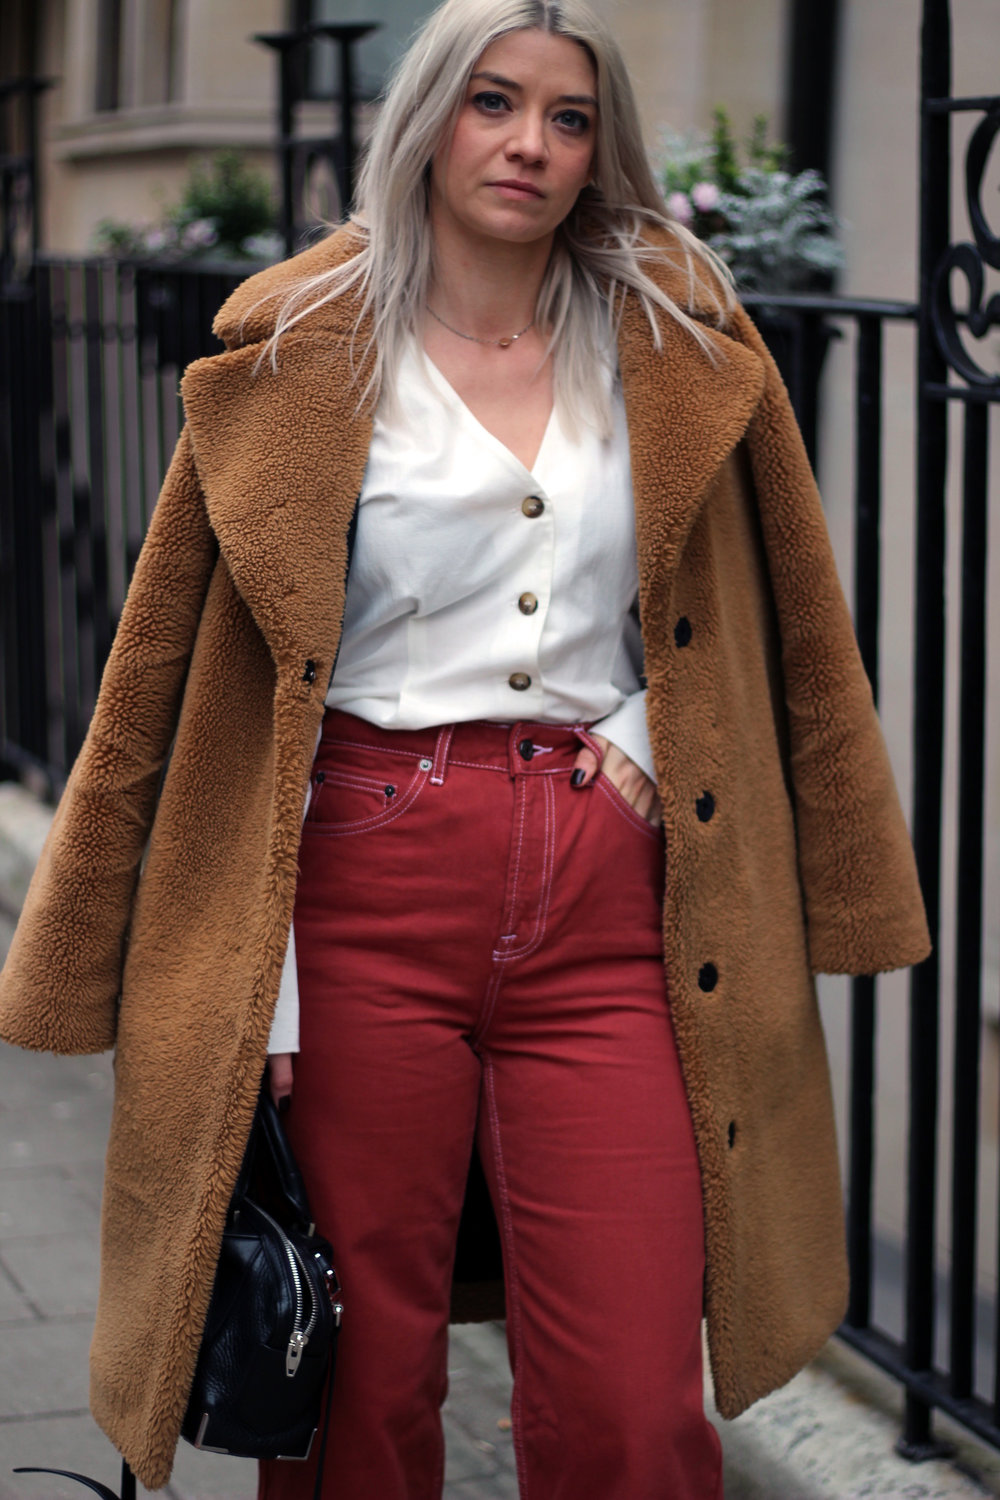 TOPSHOP JEANS, SPRING SUMMER 2018, NORTHERN MAGPIE 6